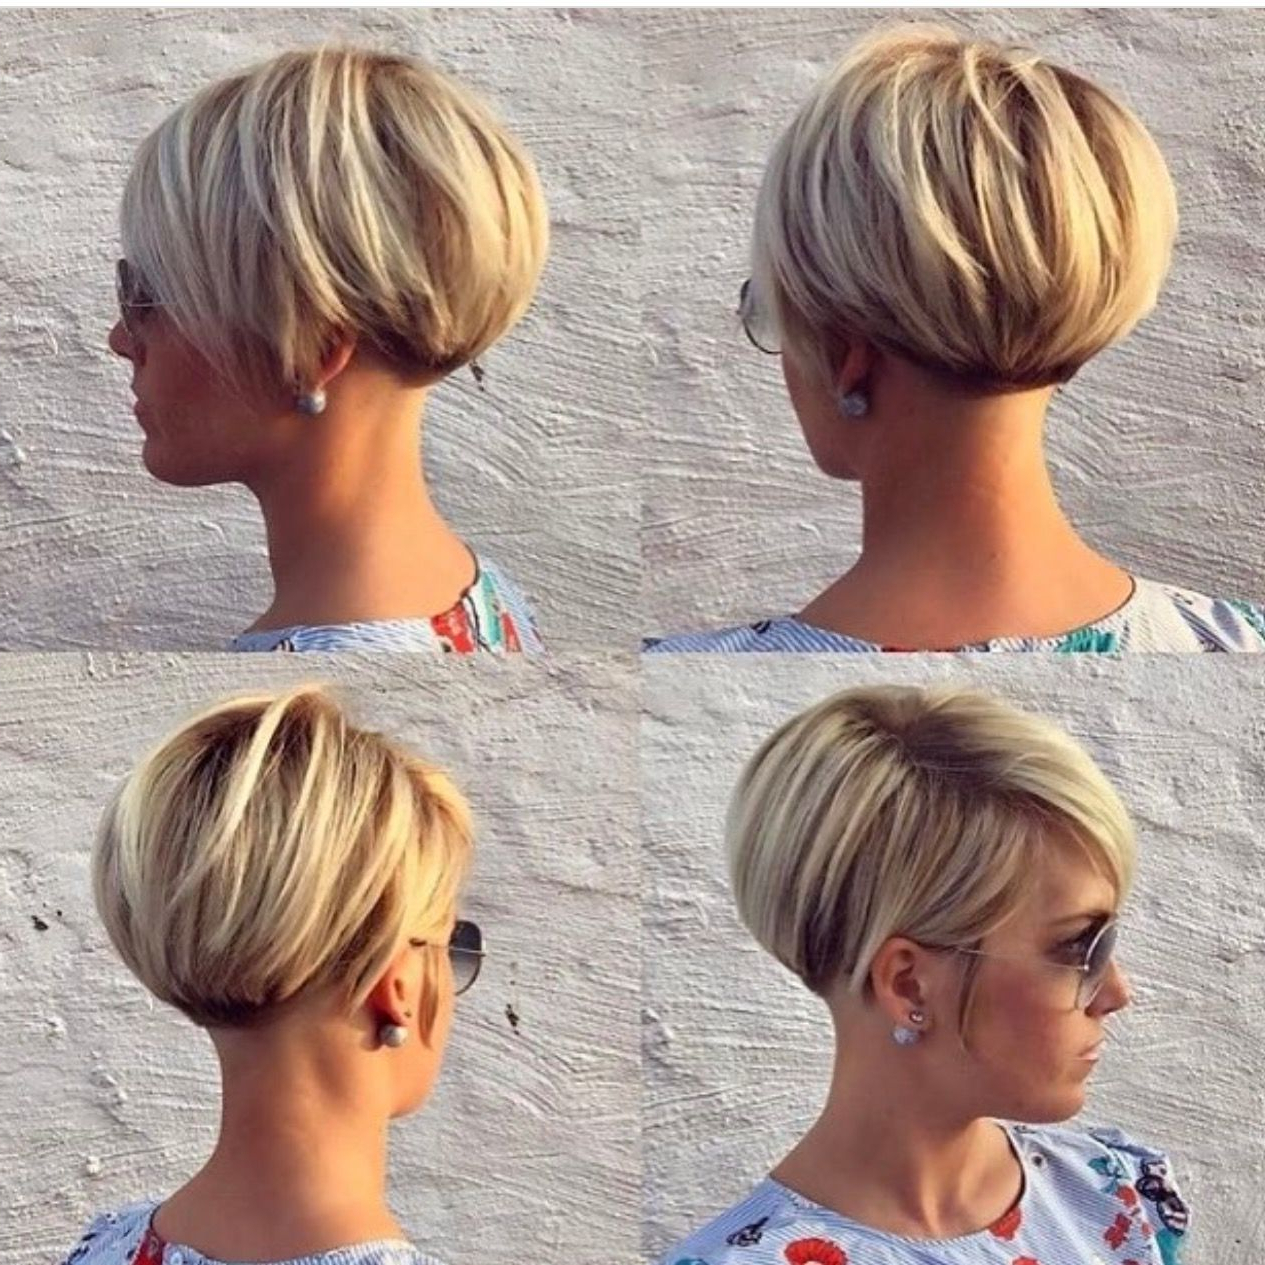 Pinsvetlana Marchuk On Haircuts In 2018 | Pinterest | Short Hair Within Side Parted White Blonde Pixie Bob Haircuts (View 12 of 20)